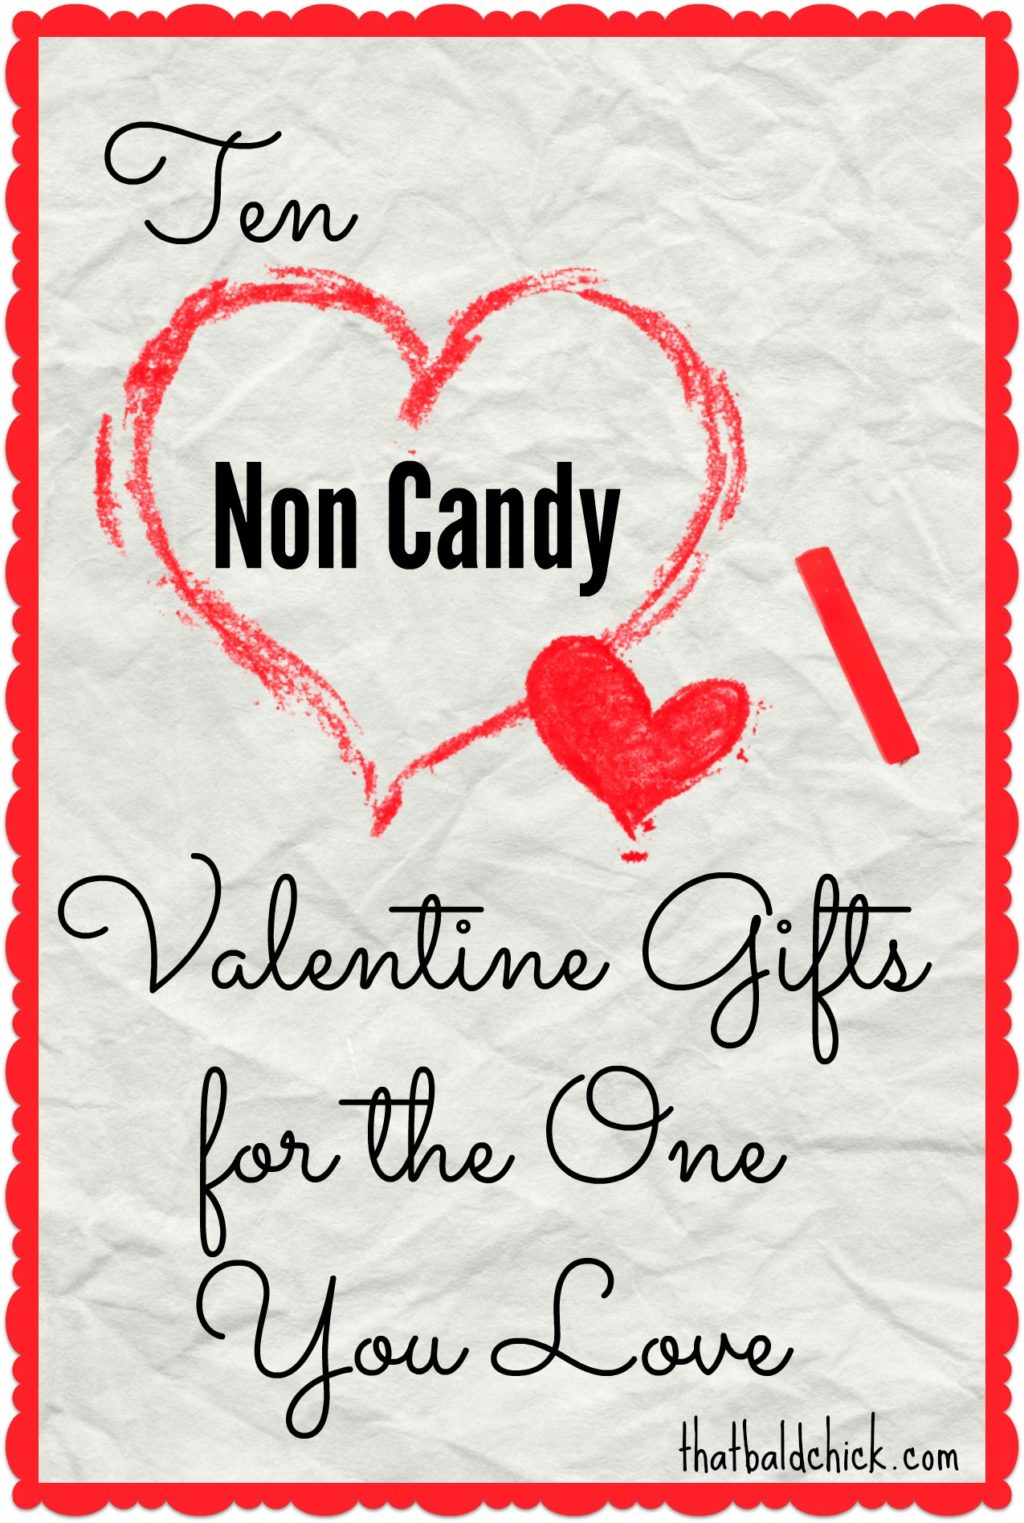 Ten Non Candy Valentine Gifts for the One You Love